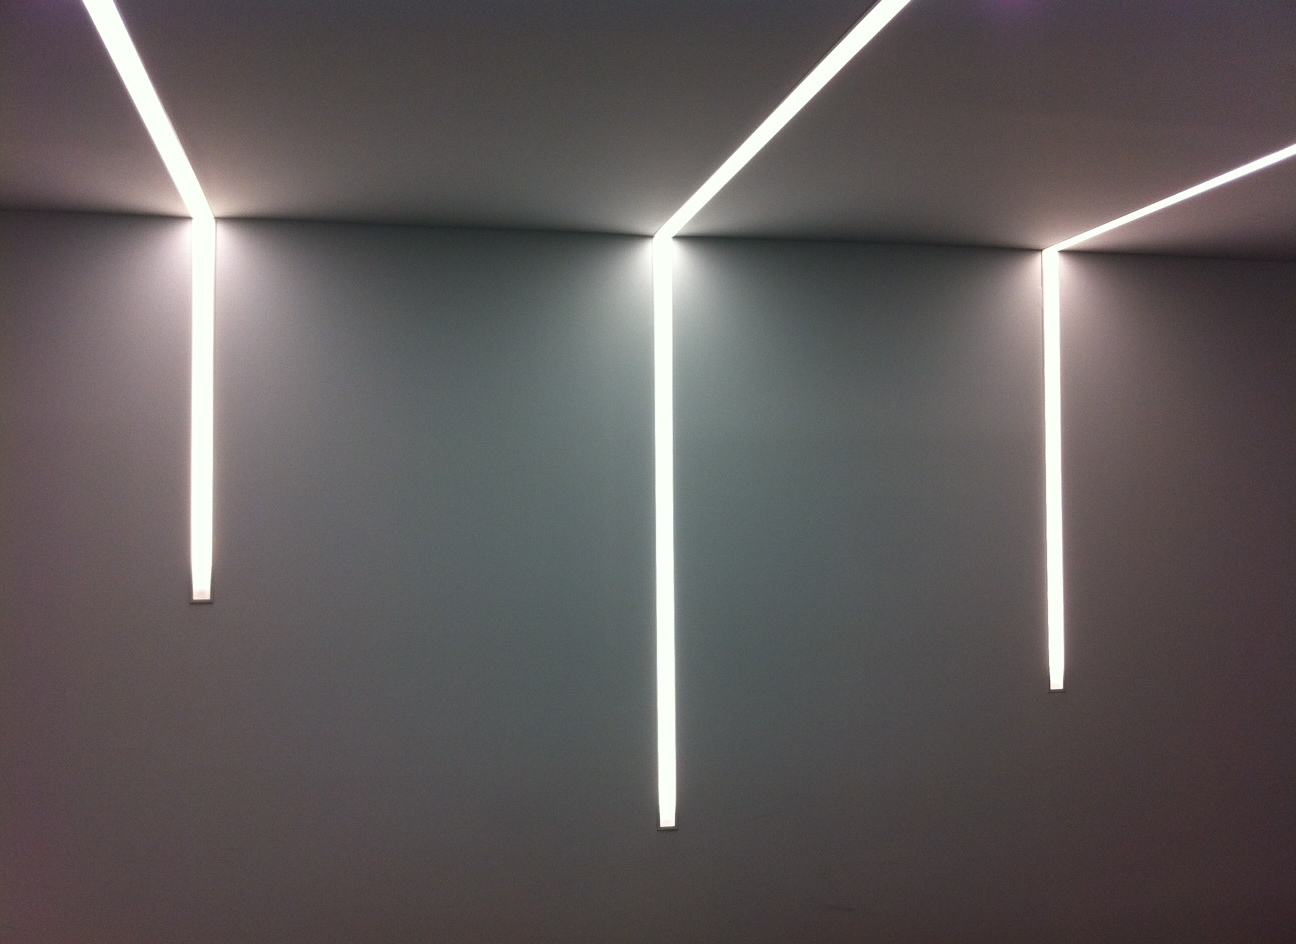 Ferreter a grupo jlr for Luces de pared interior